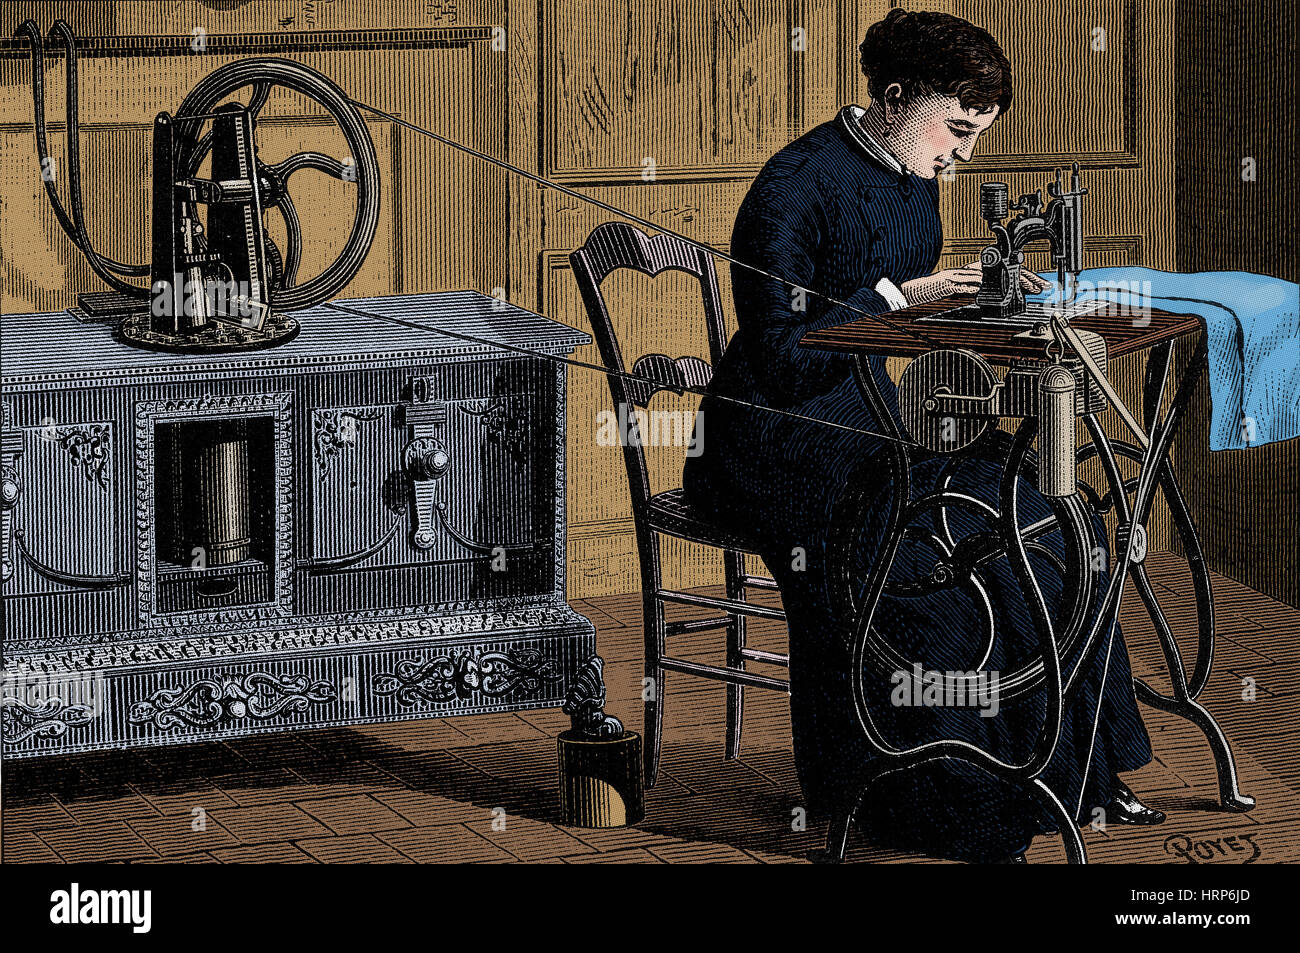 Steam Powered Sewing Machine - Stock Image